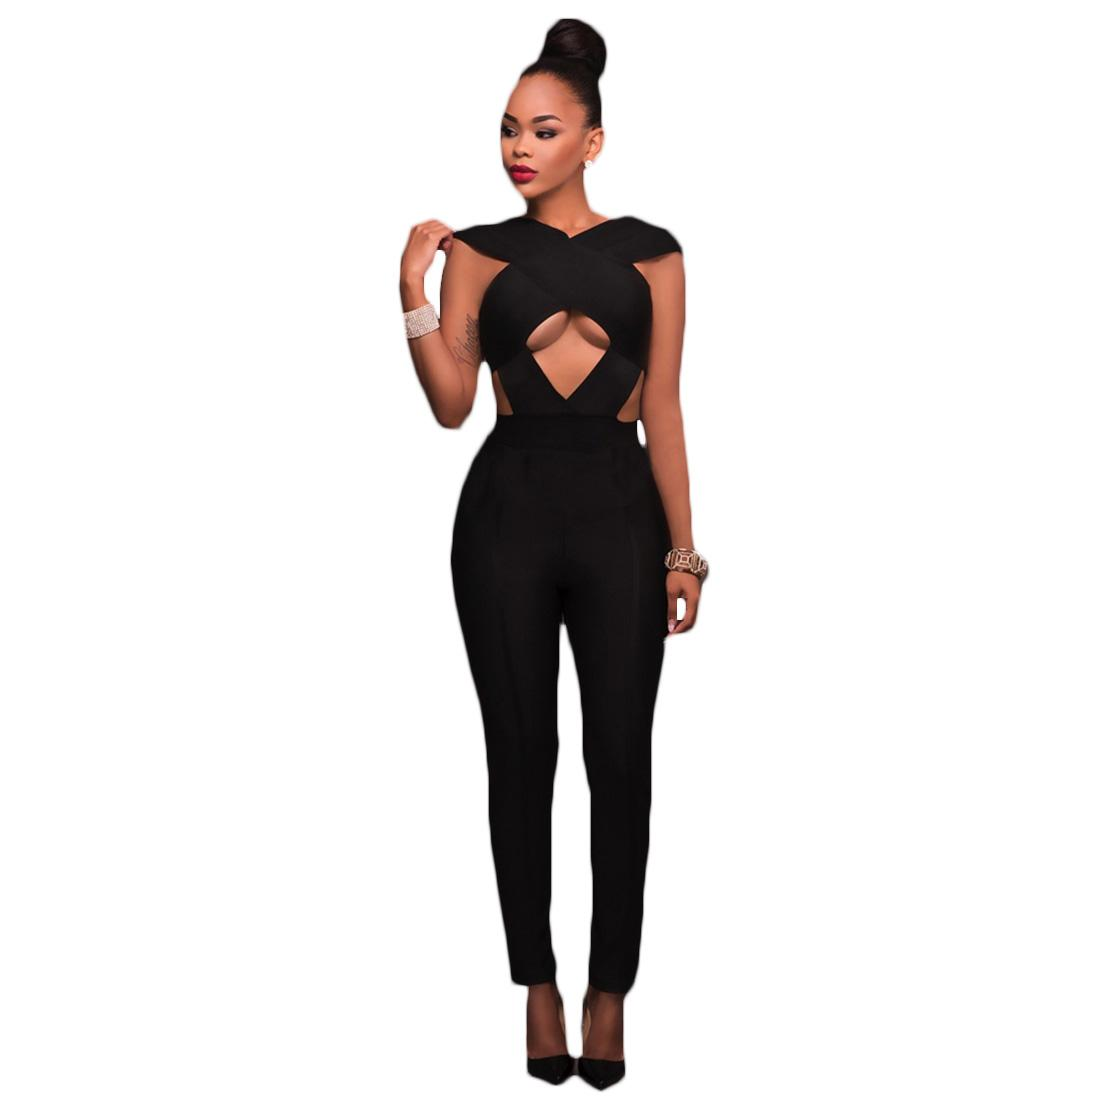 de0845661163 2019 Wholesale Hollow Out Bandage Black Rompers Womens Jumpsuits 2017  Sleeveless Backless Stretchy Party Bodysuits Zipper Up Slim Long Pants From  Yukime